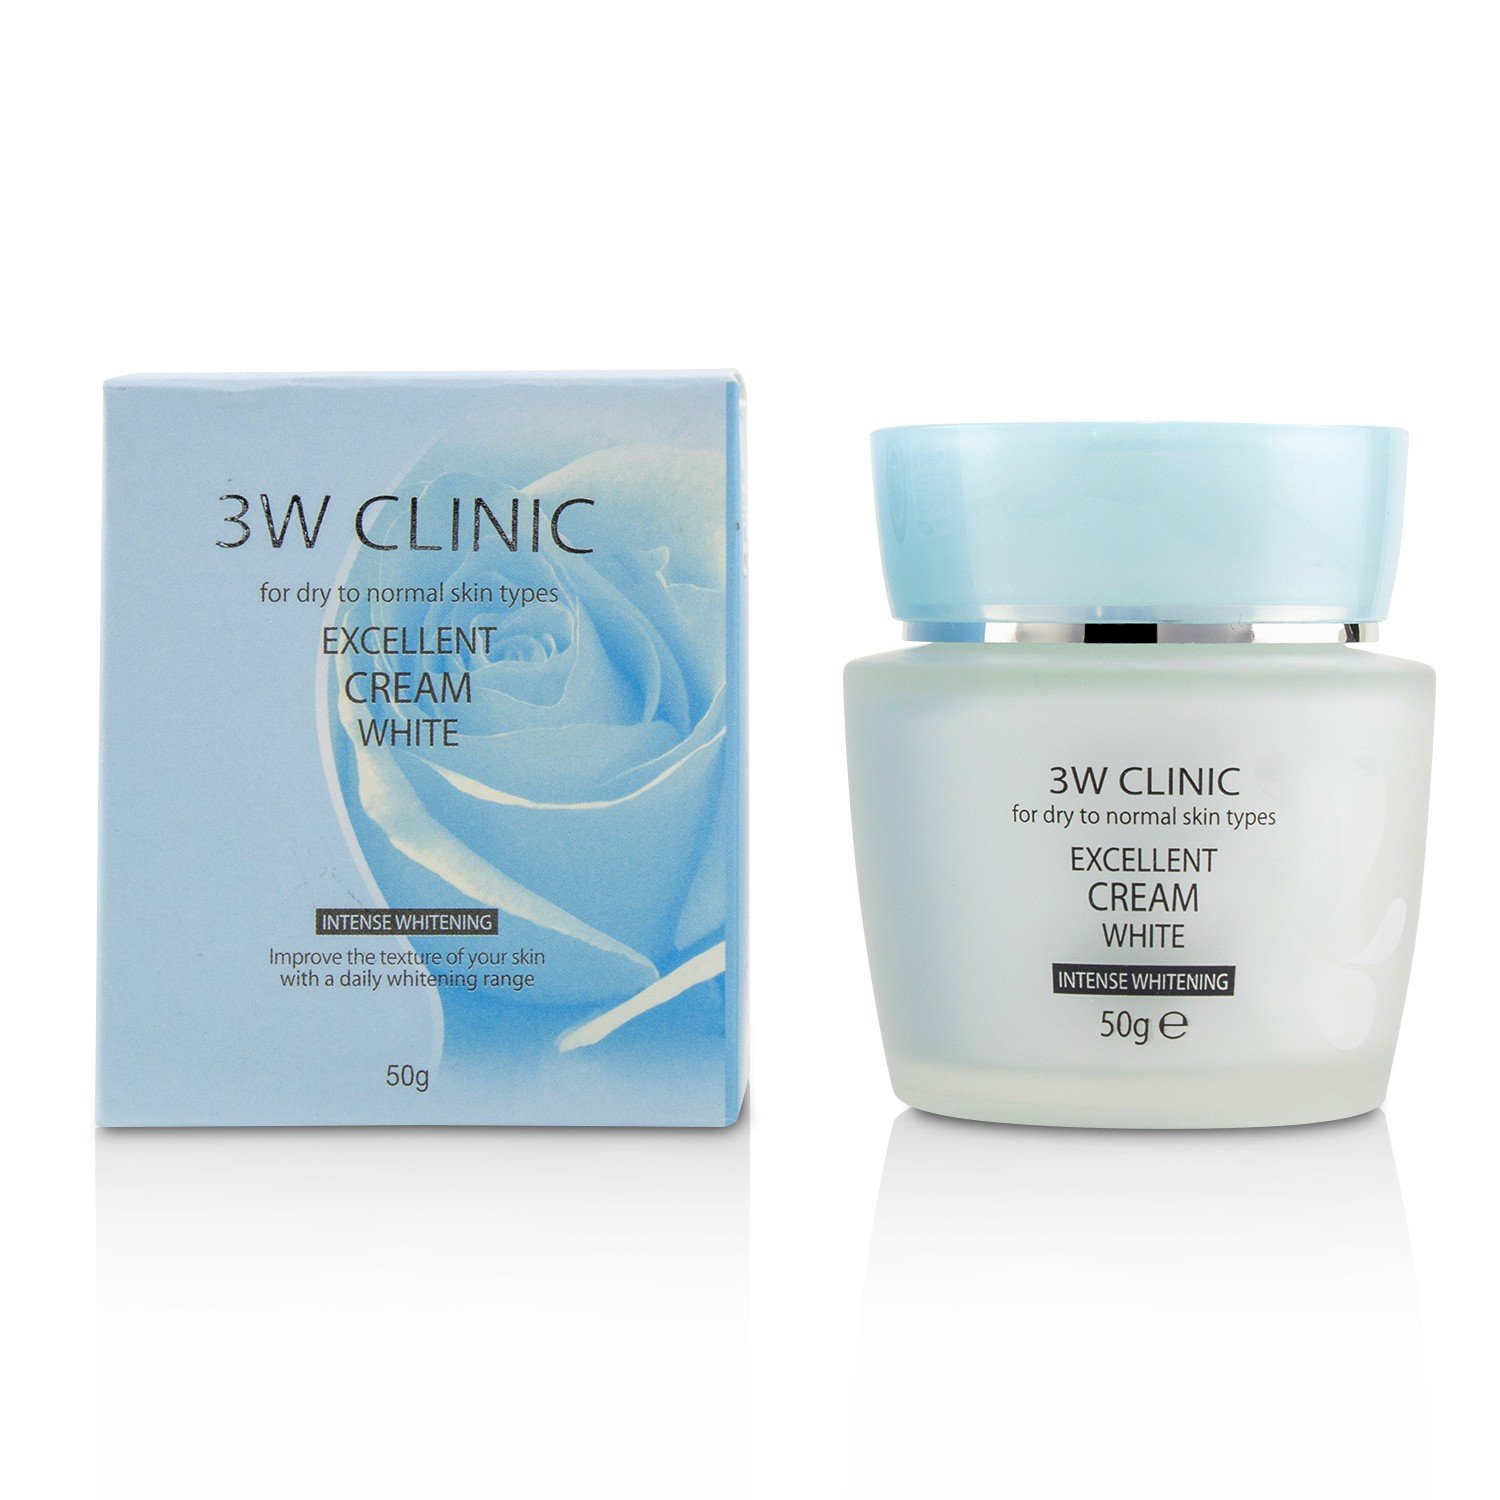 3Wクリニック Excellent White Cream (Intensive Whitening) - For Dry to Normal Skin Types 50g/1.7oz並行輸入品